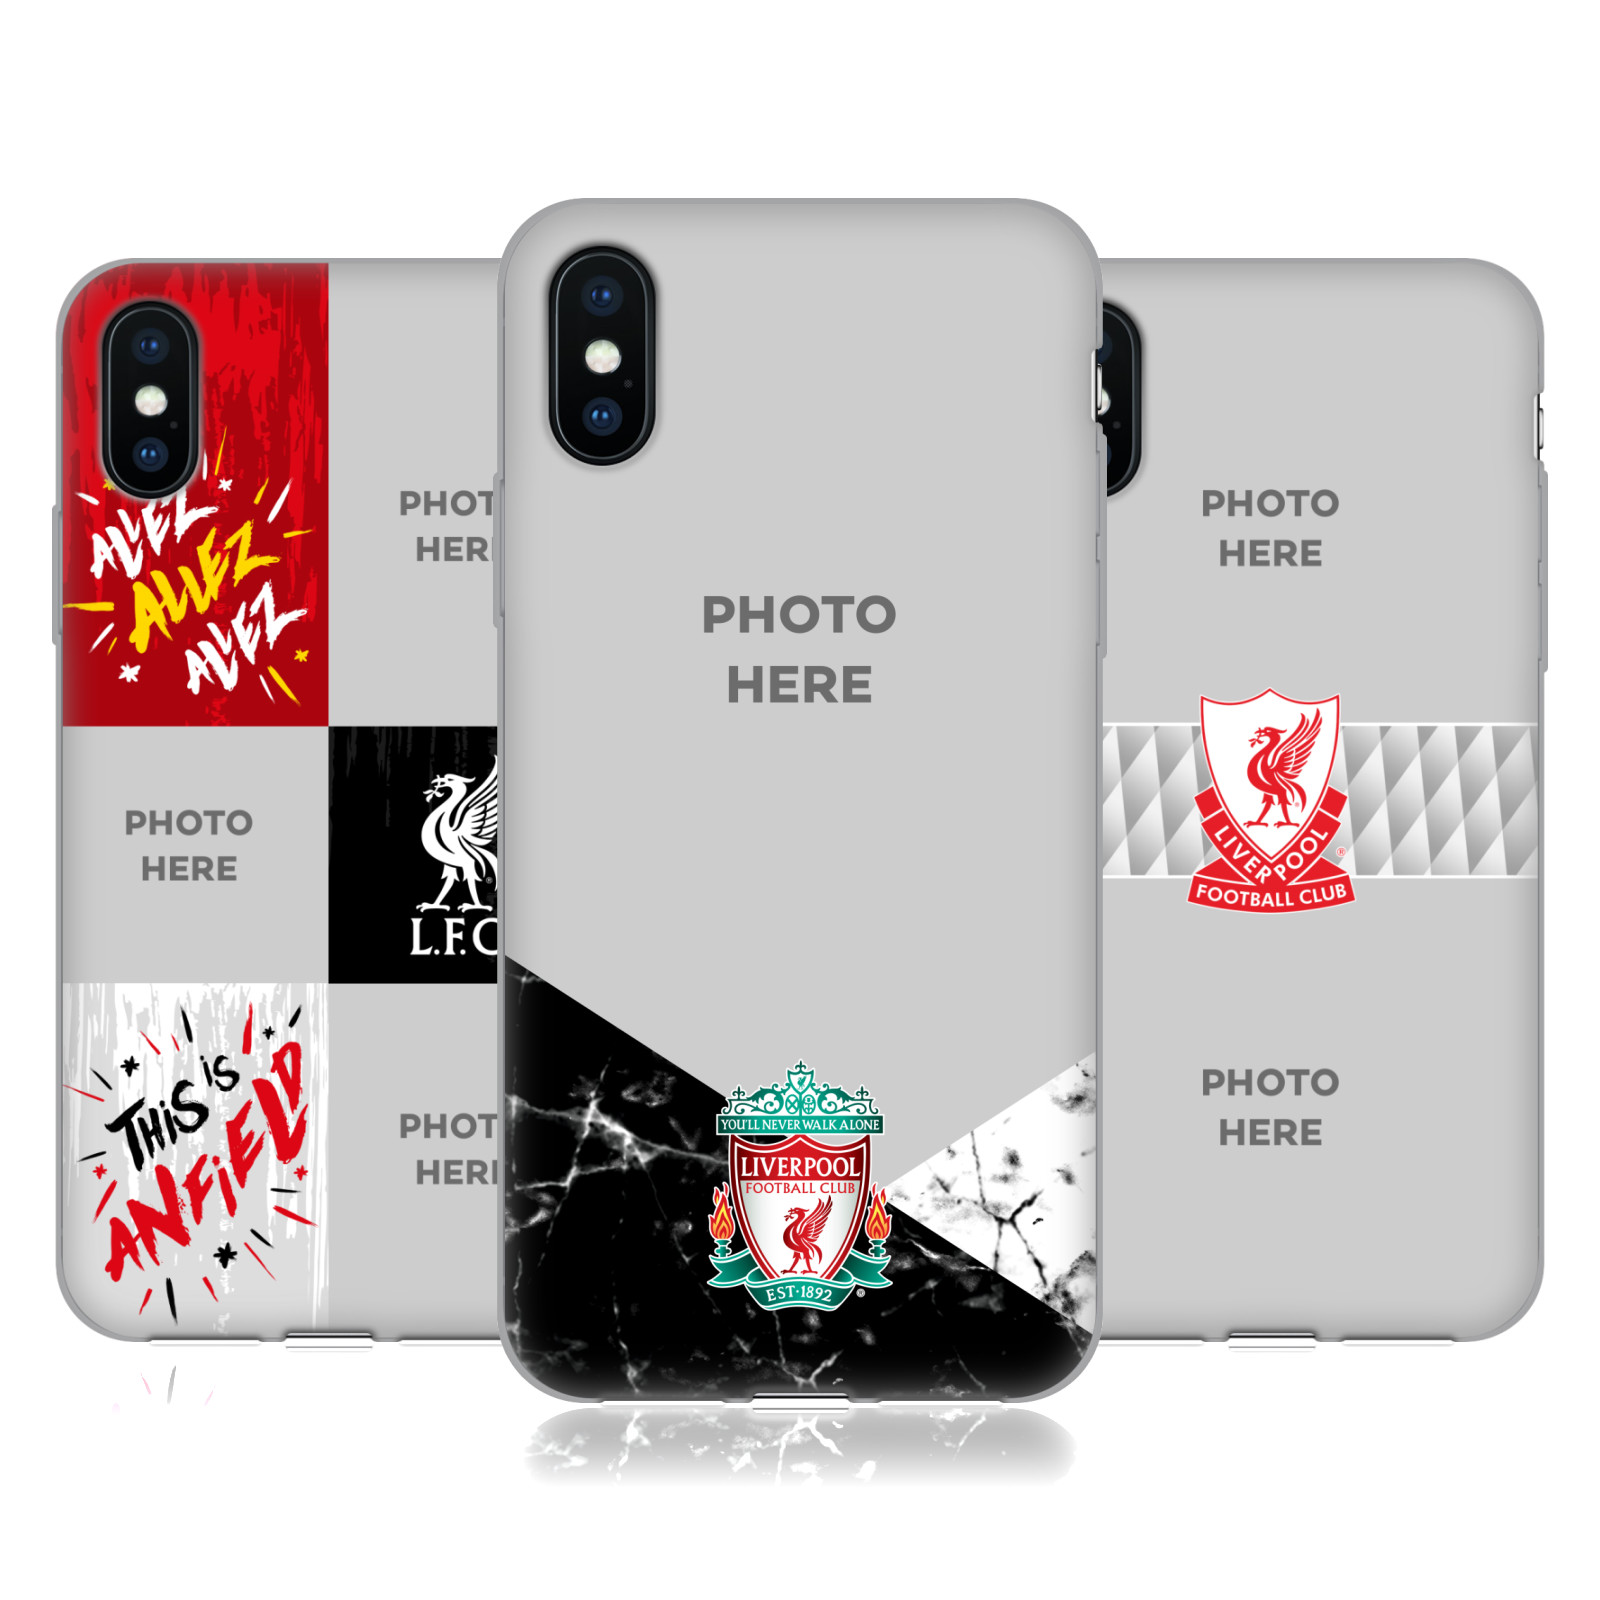 Liverpool Football Club <!--translate-lineup-->2018/19 Photos Personalised<!--translate-lineup-->